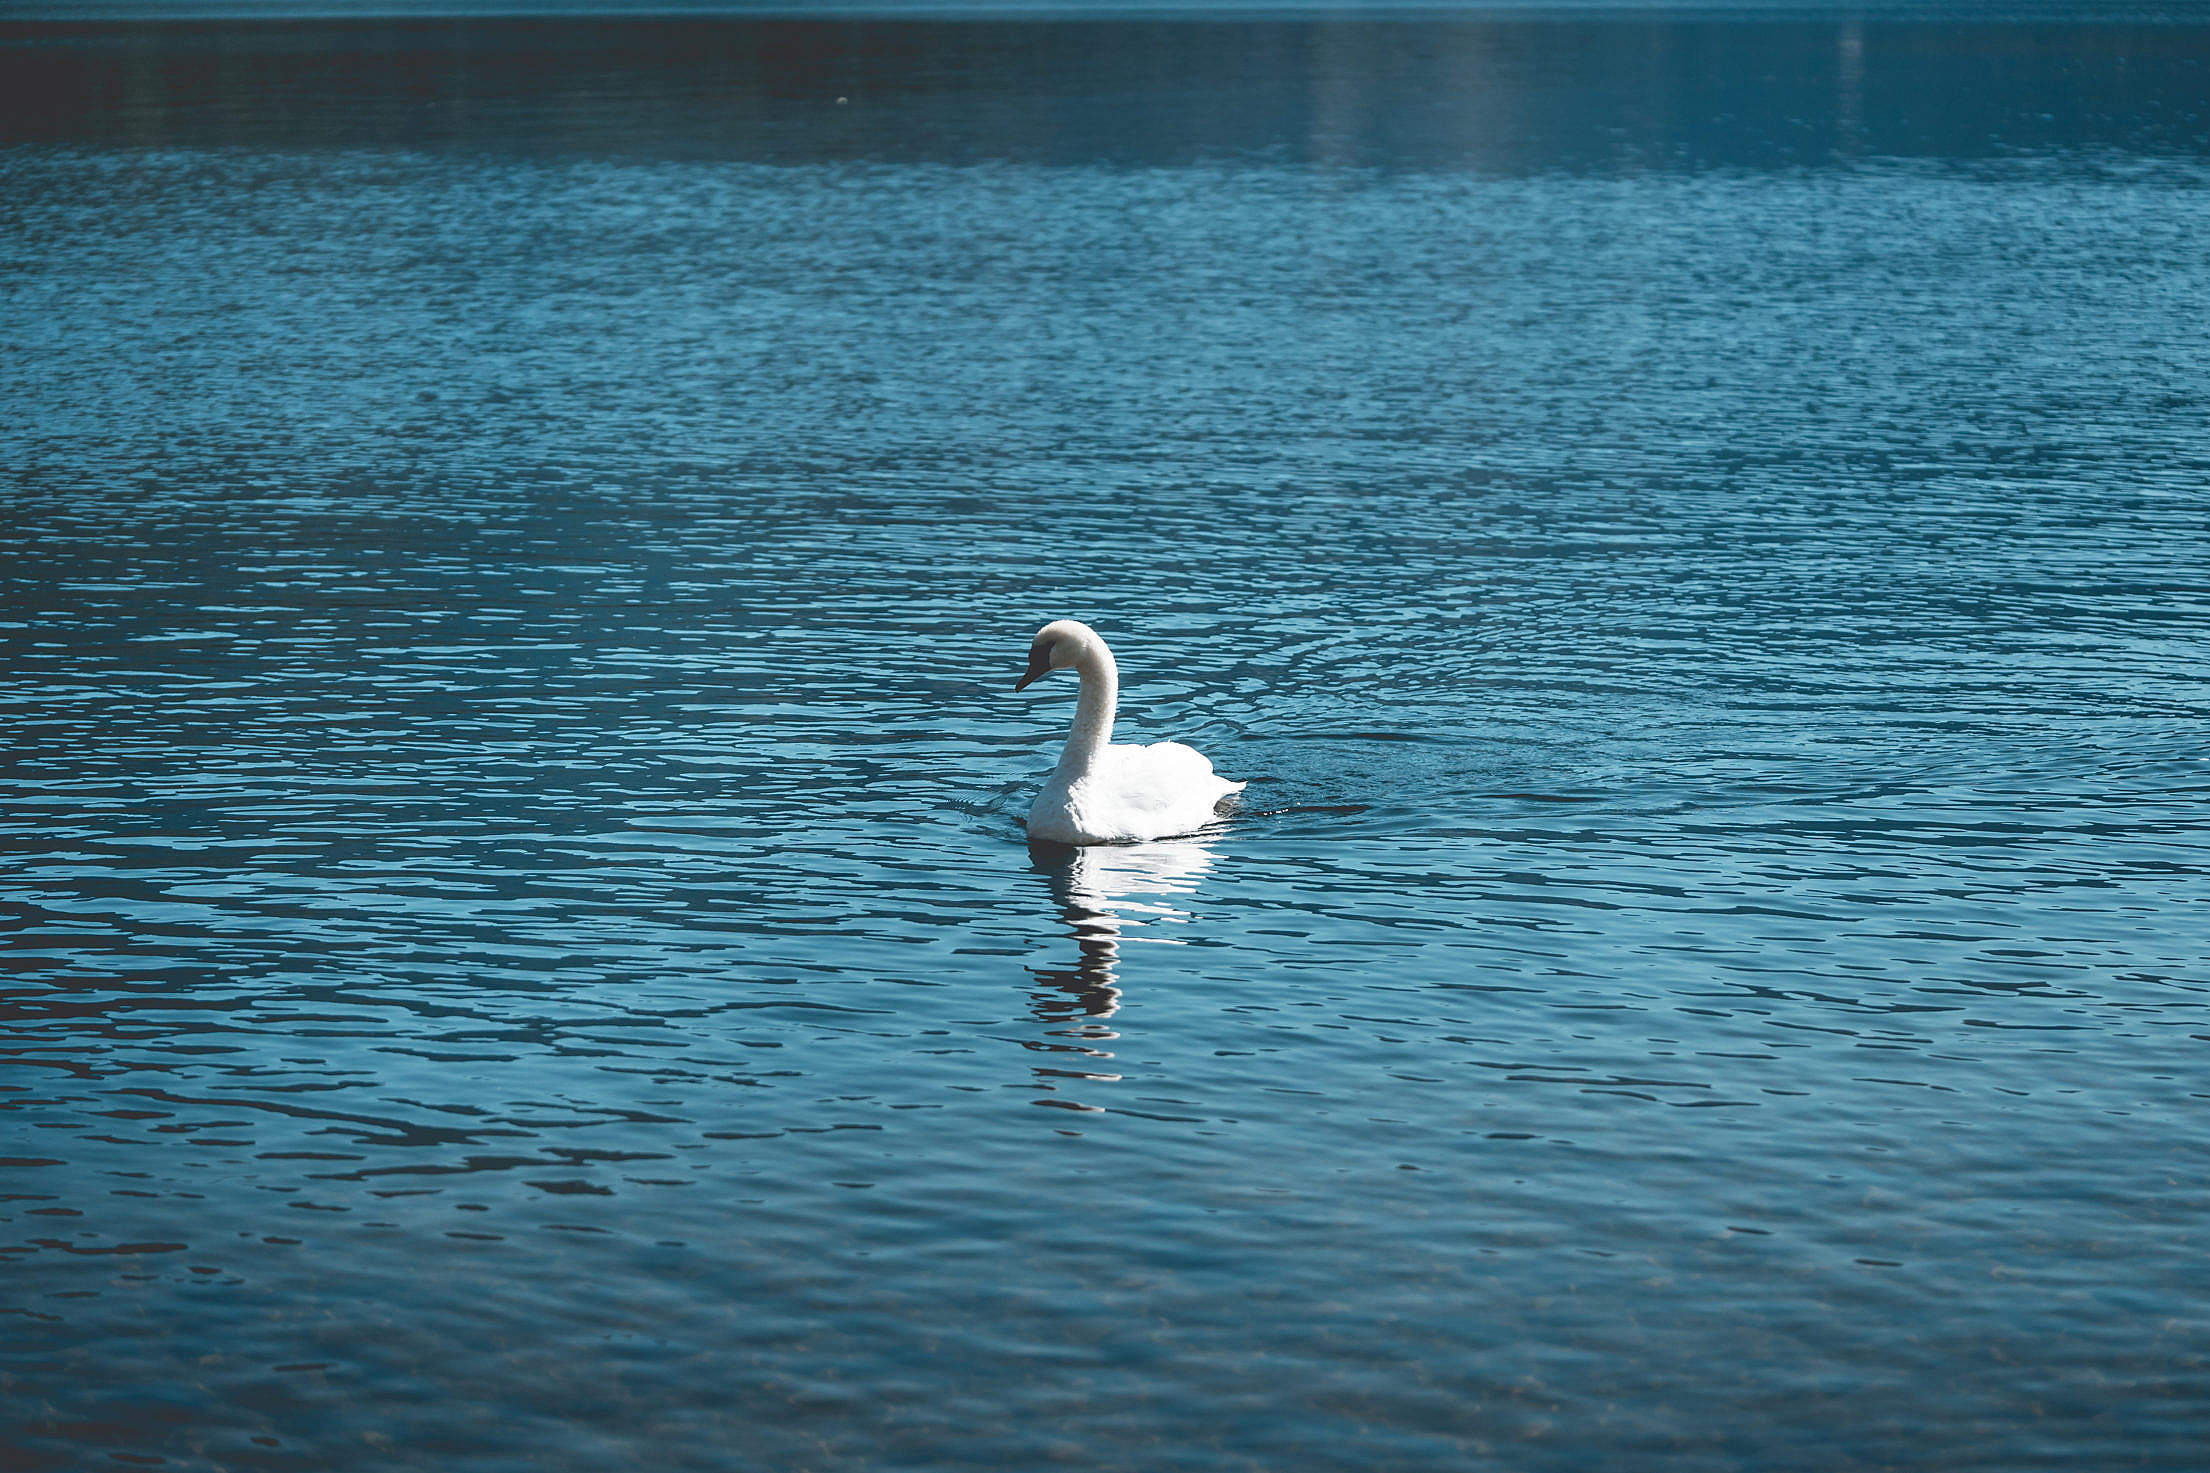 Young Swan Swimming Alone on a Lake Free Stock Photo